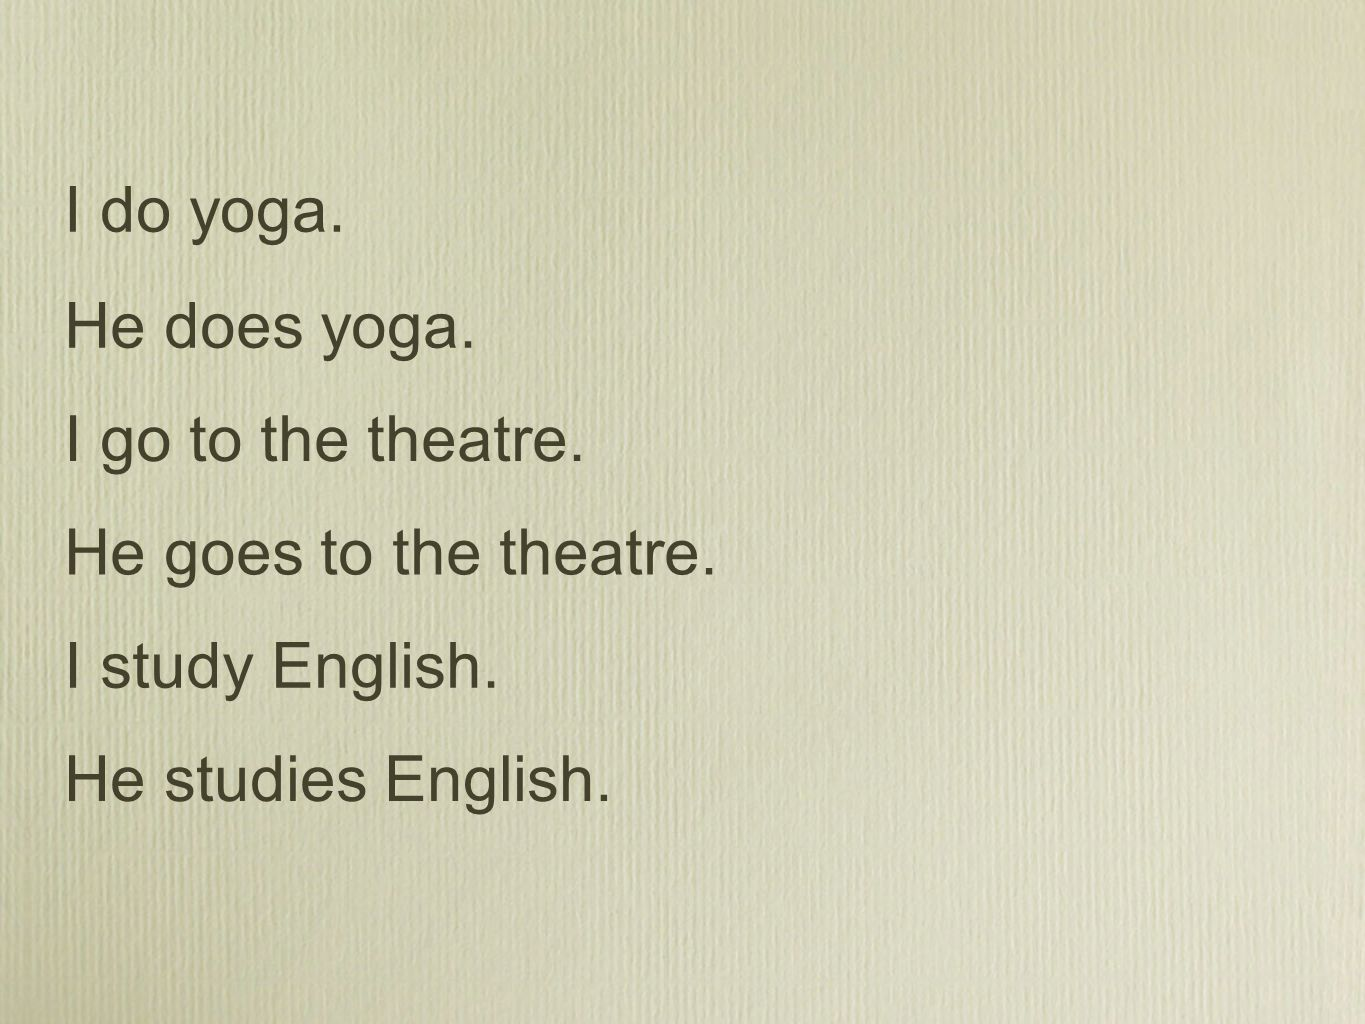 I do yoga.He does yoga.I go to the theatre. He goes to the theatre.